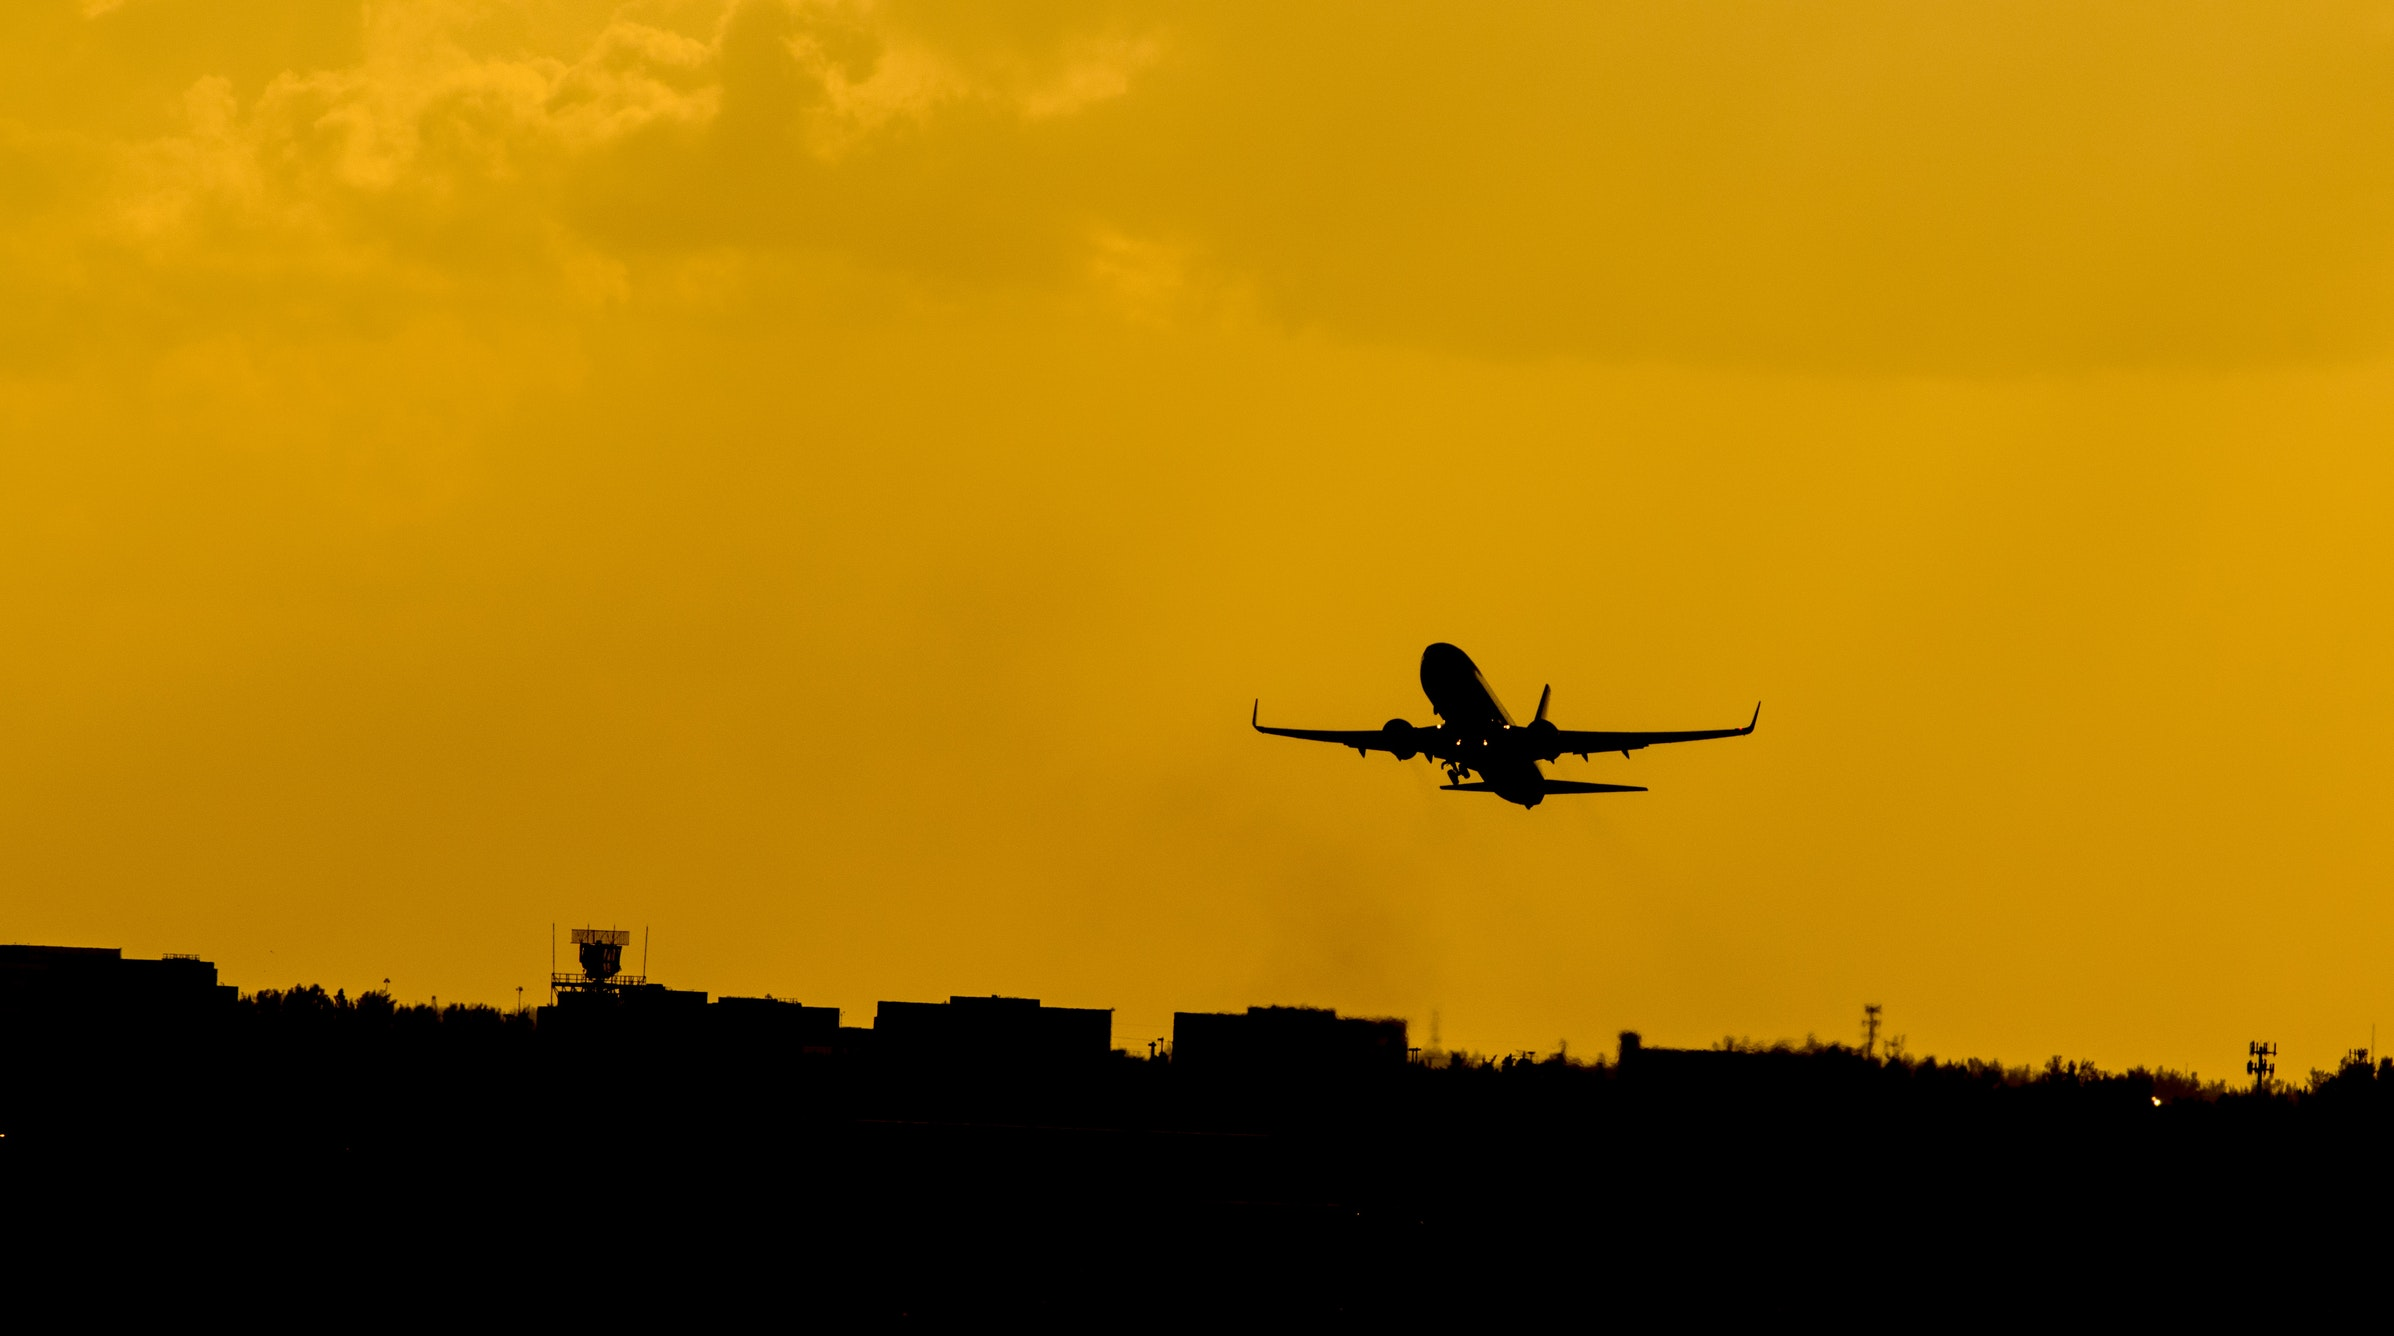 Silhouette of a plane flying against a dark yellow sky